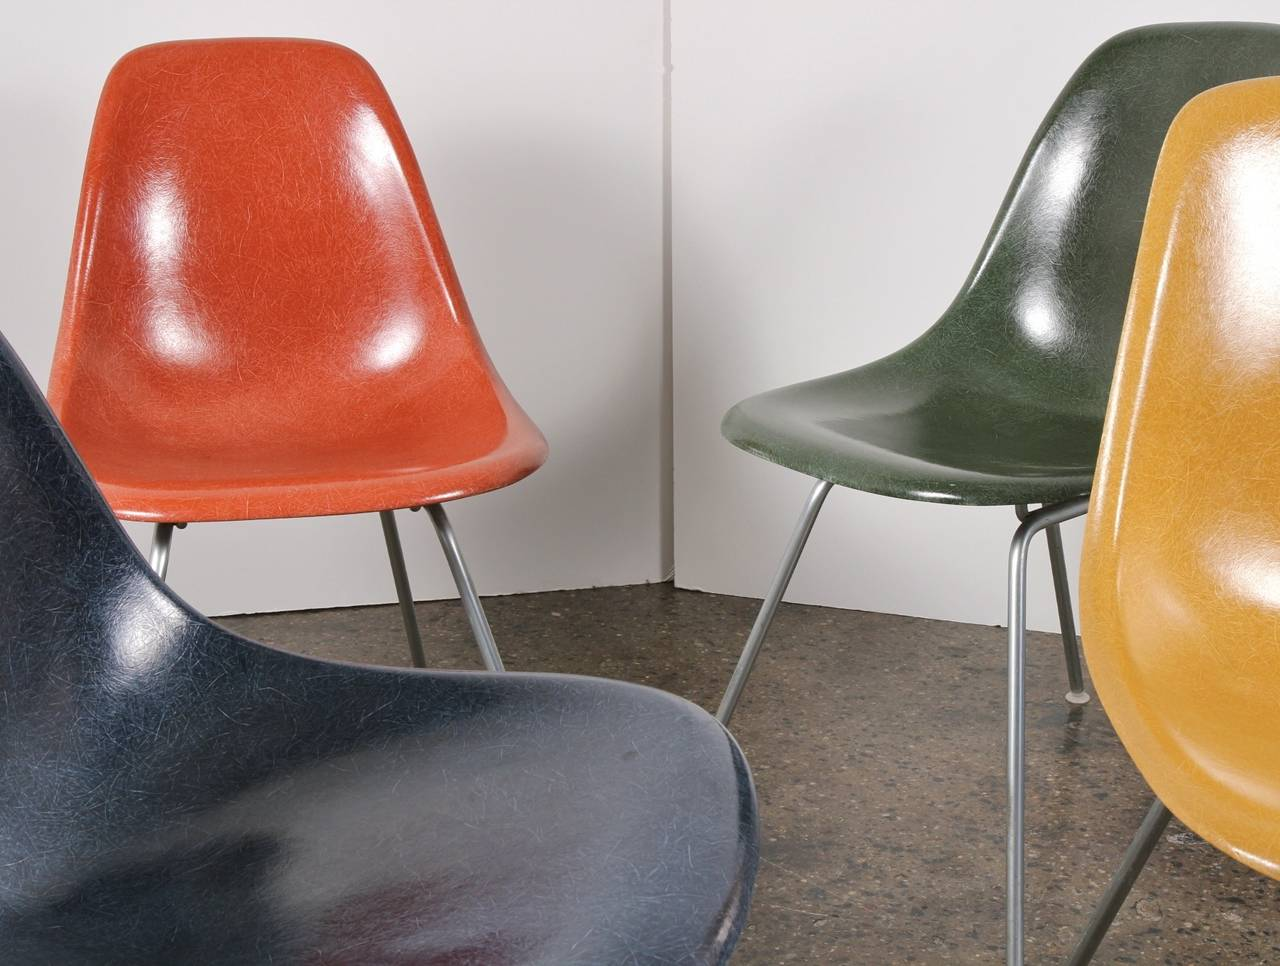 Molded Original Eames Fiberglass Shell Chairs by Herman Miller For Sale